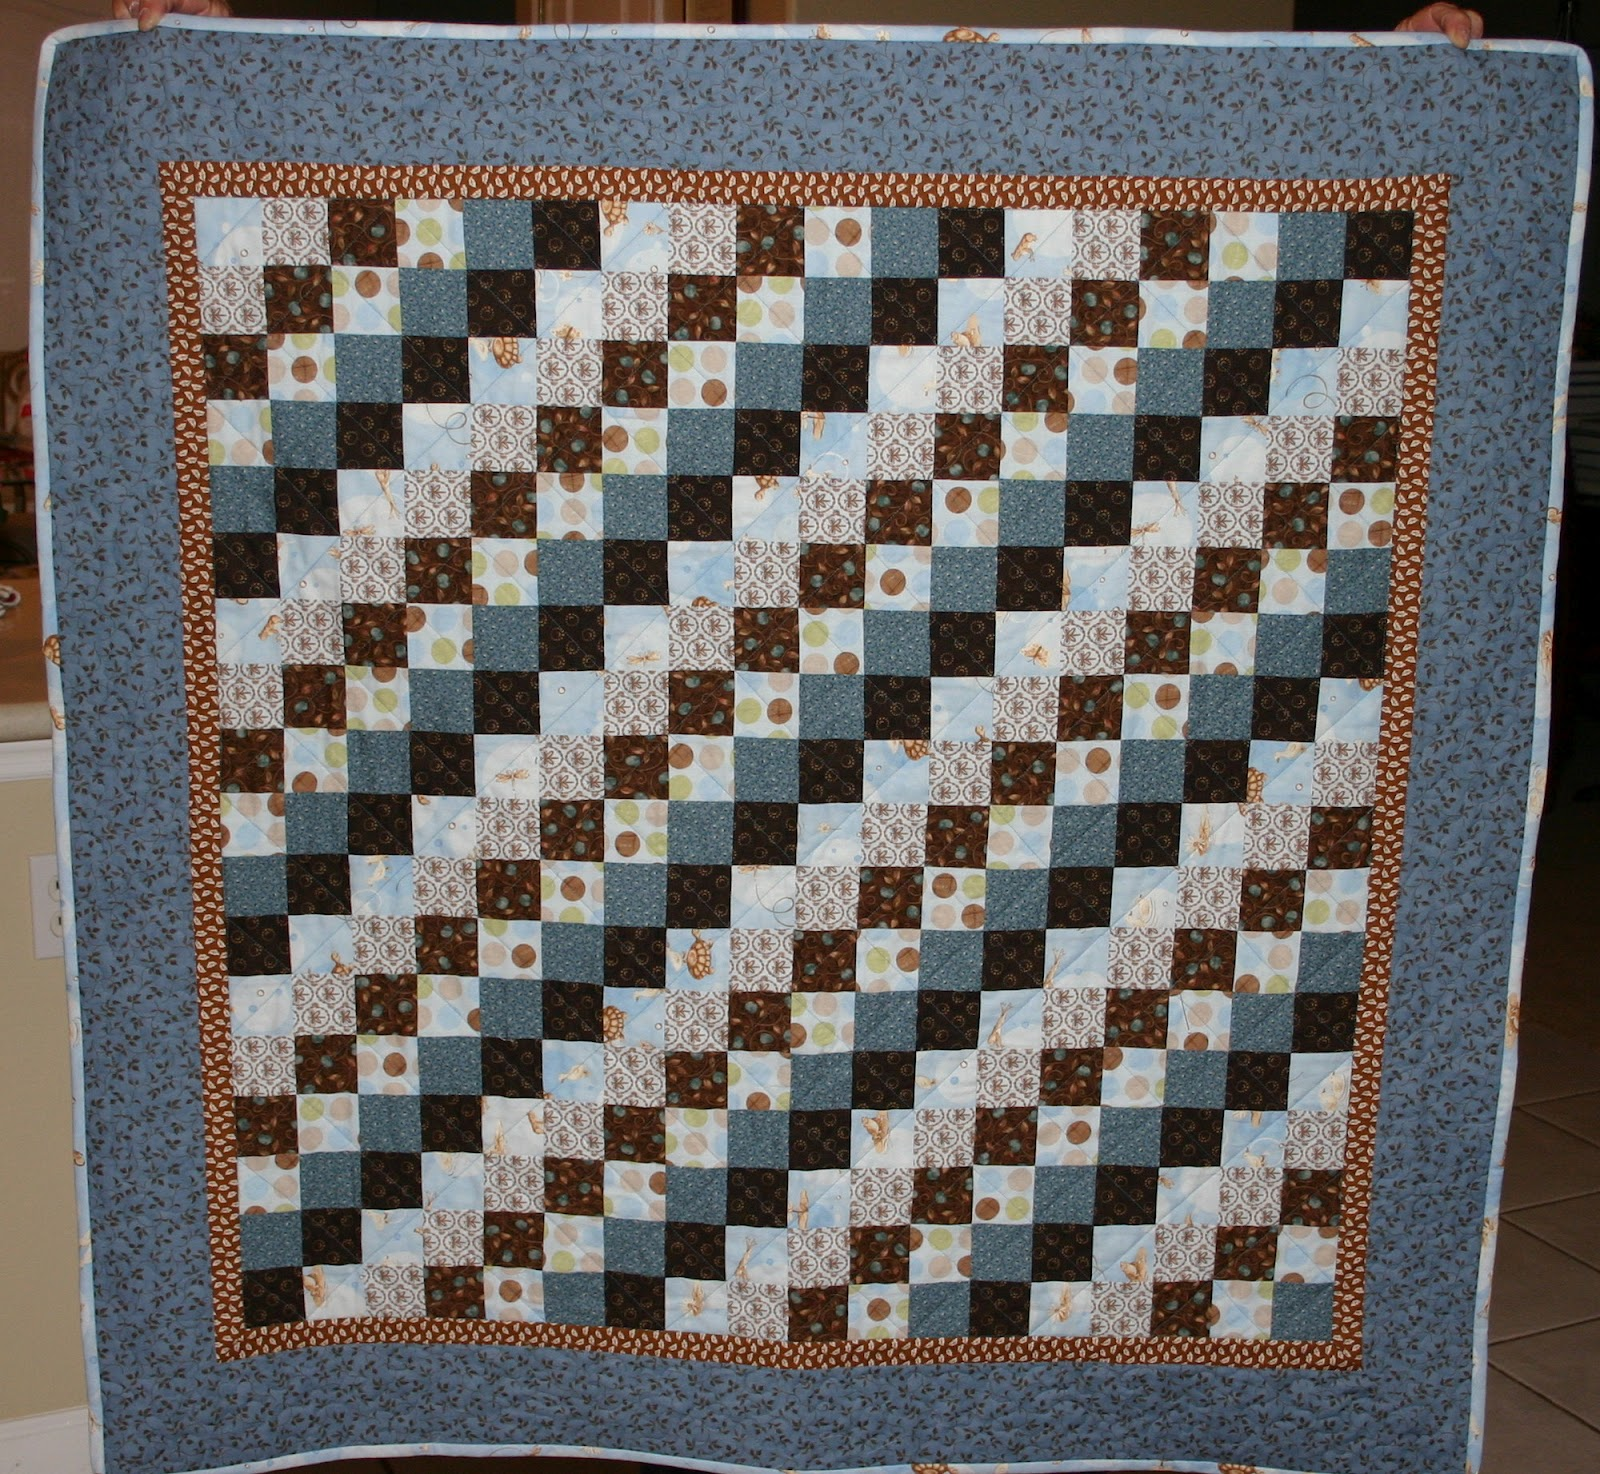 variegated and to blue abyquilts for on img medium freehanded below picture click the quilting i photo in loops design leaves shaped a heart quilt quilts tag thread enlarge